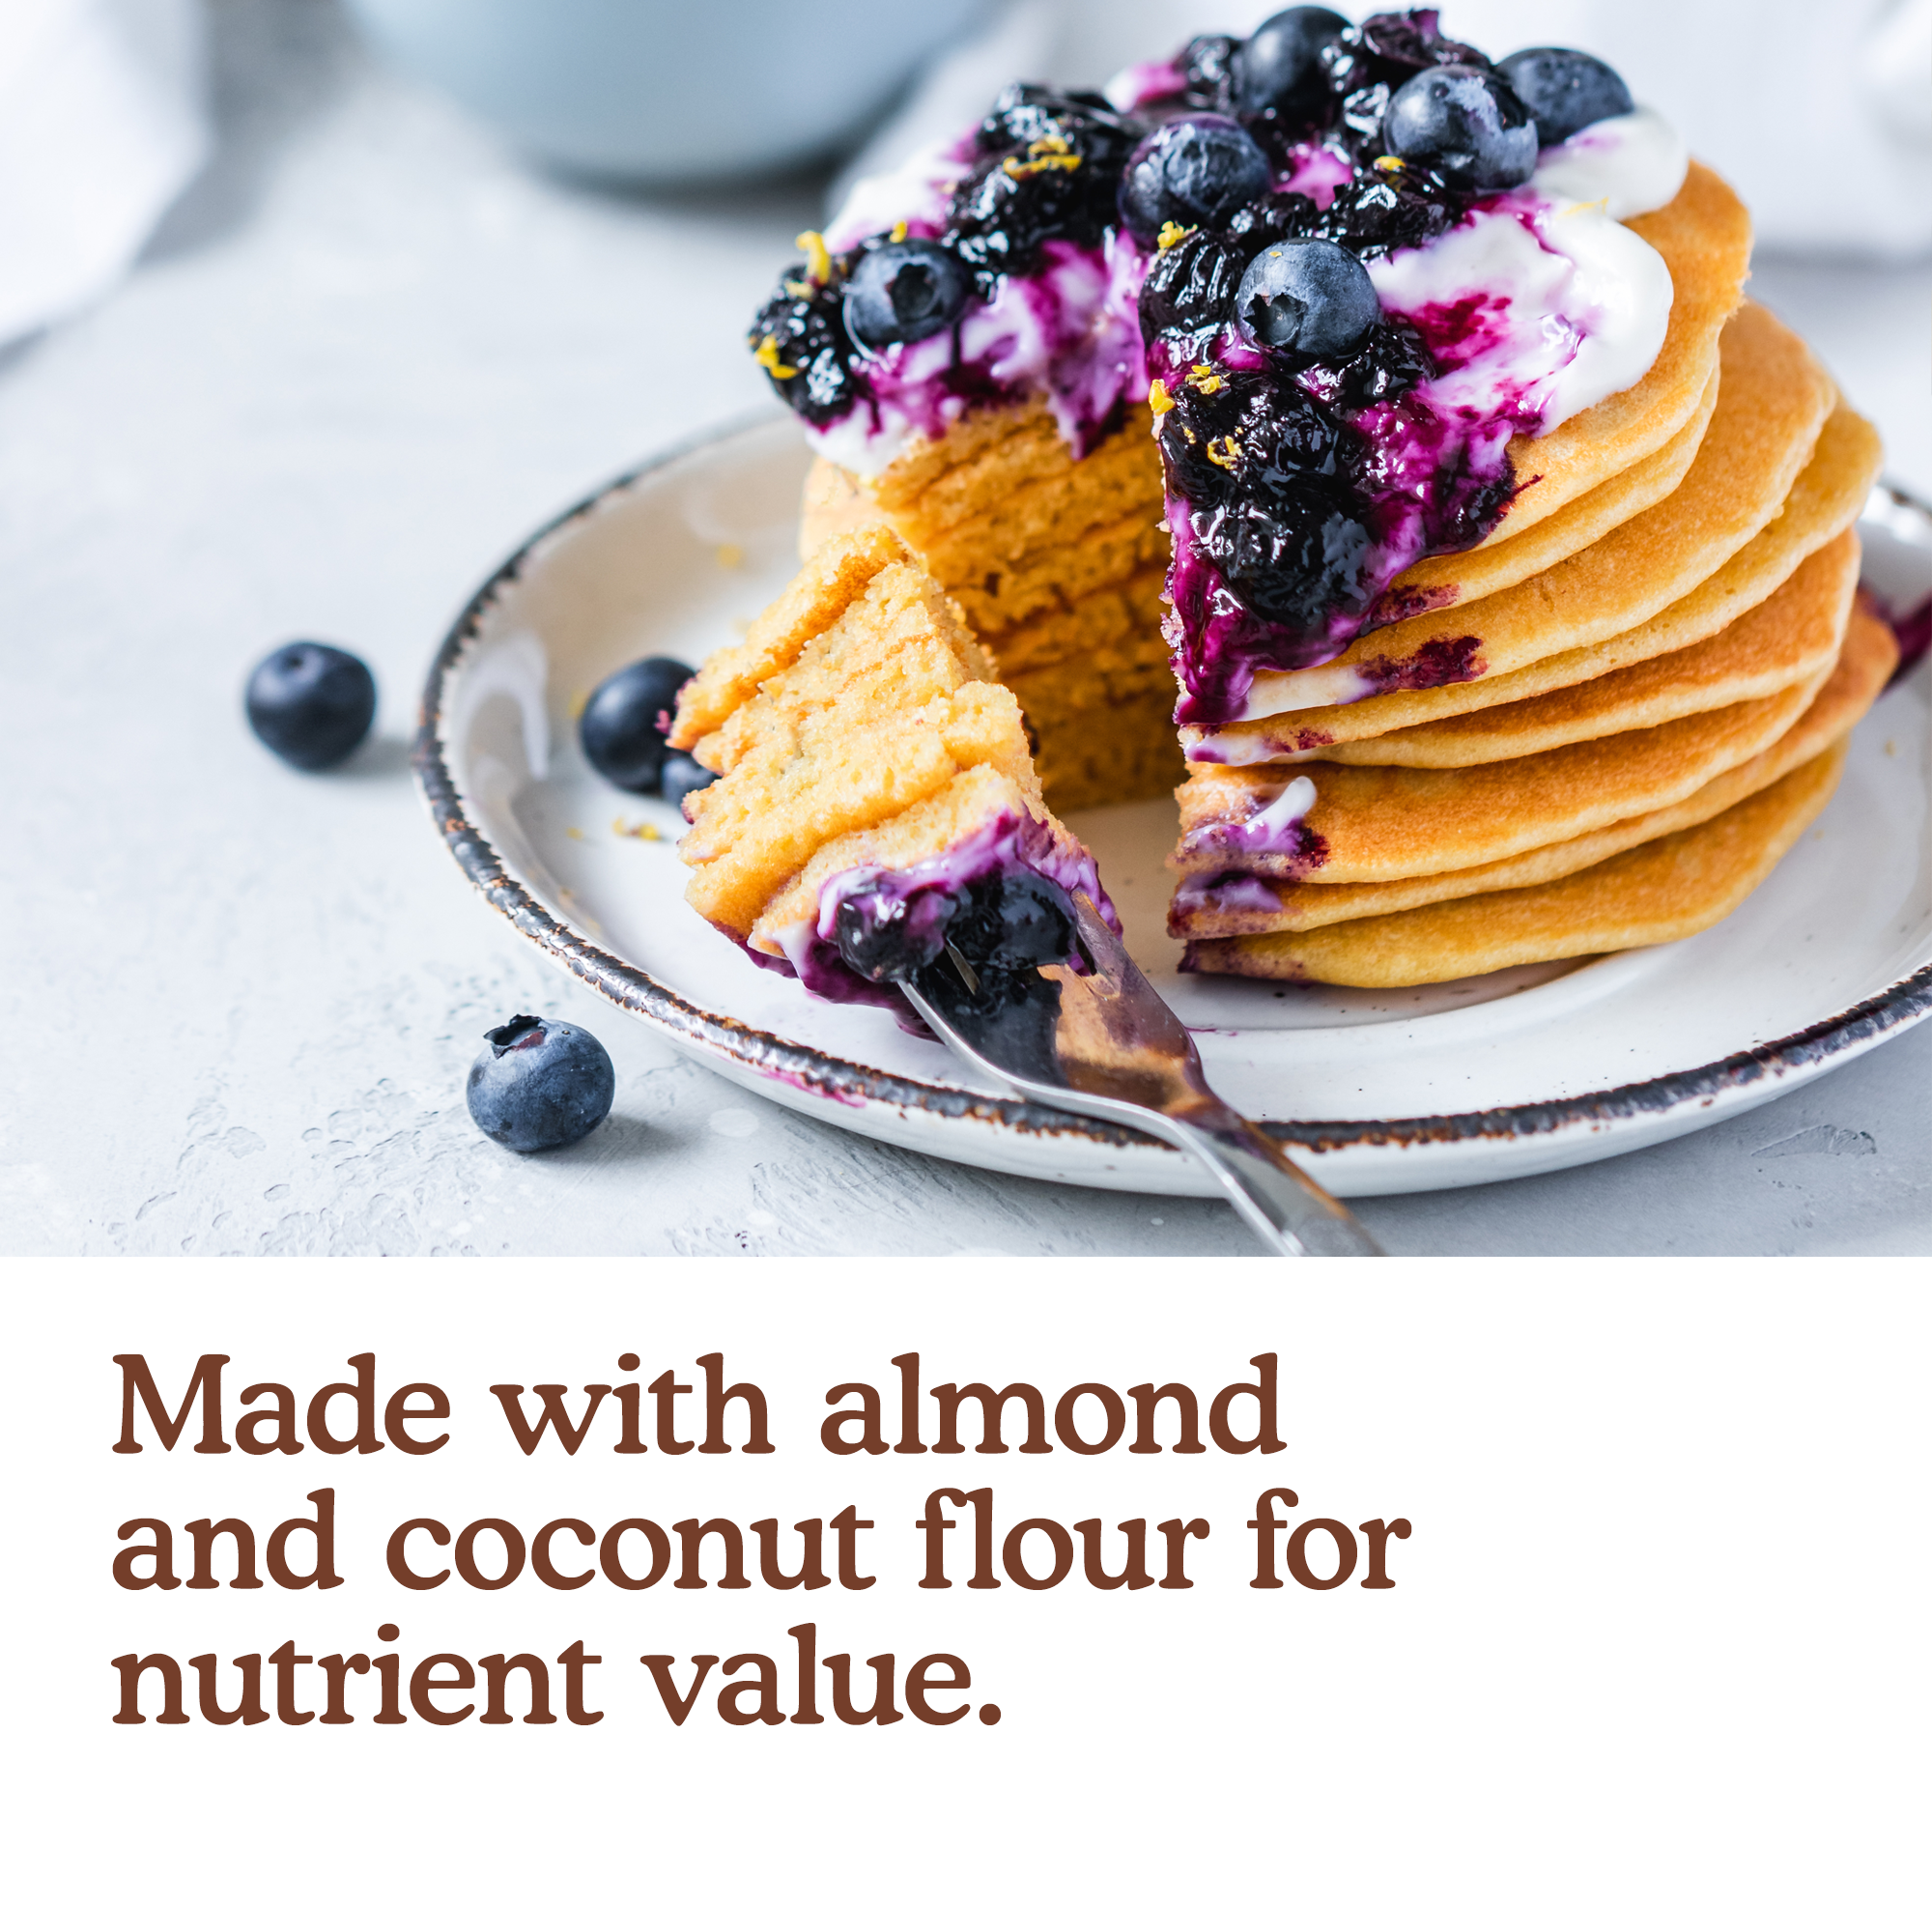 Made with almond and coconut flour for nutrient value.